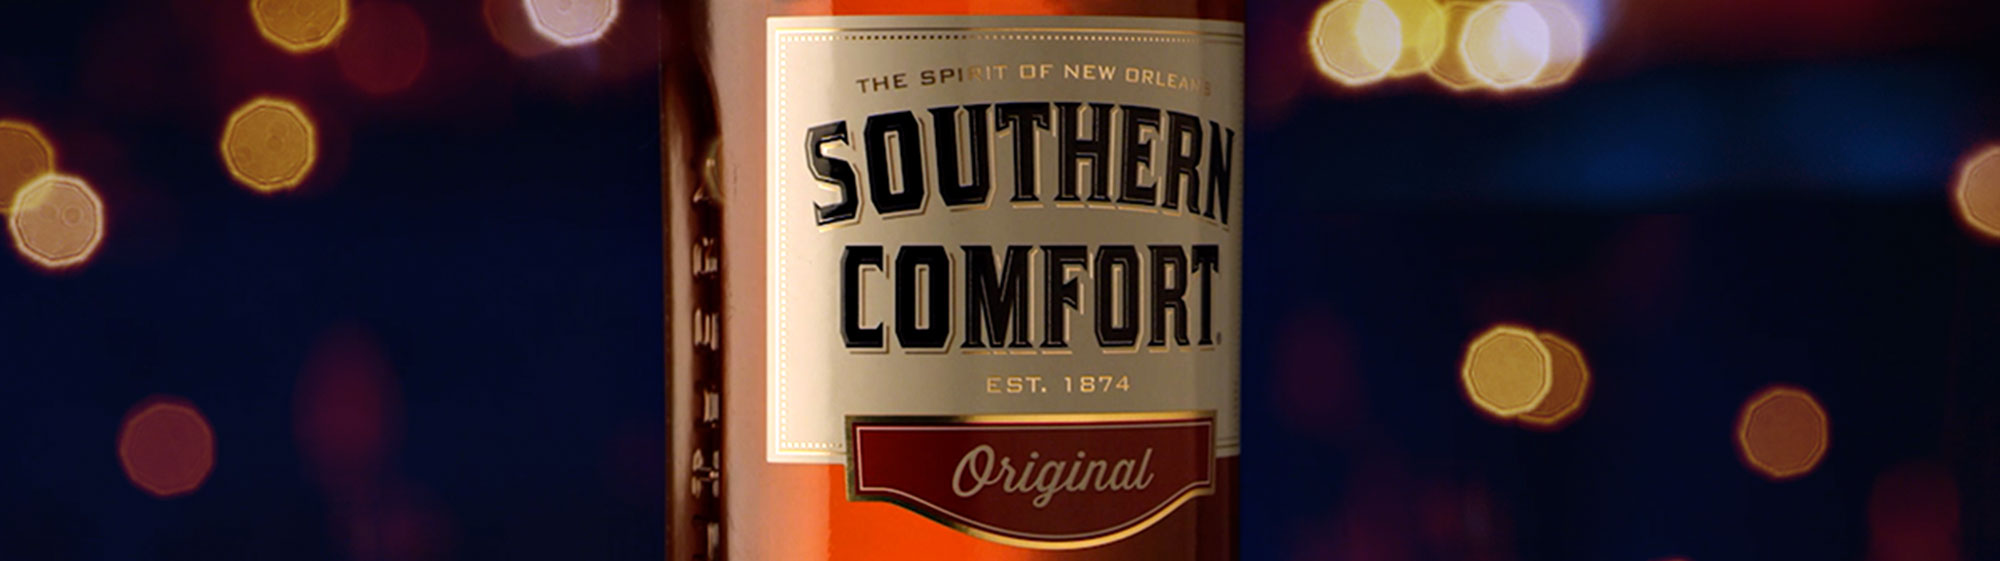 Southern comfort original secondary